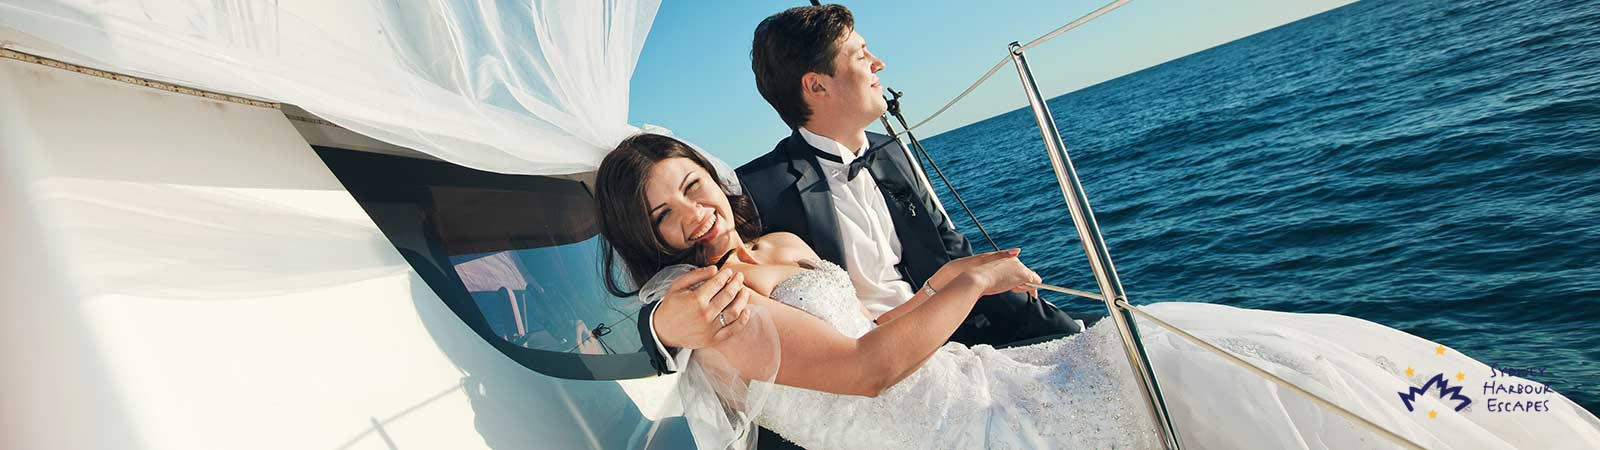 Wedding Boat Venue Sydney